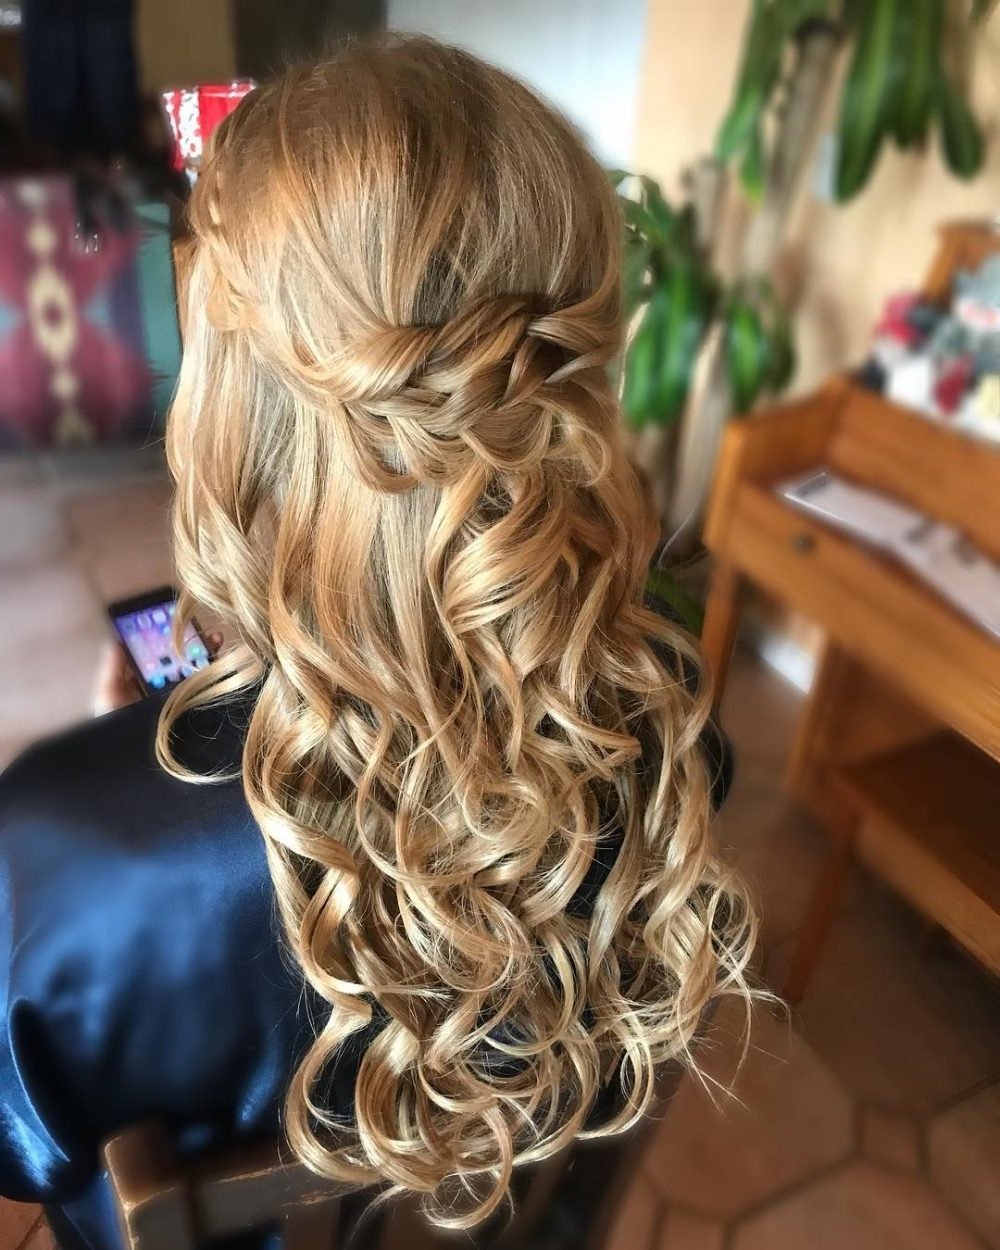 Most Current Creative And Elegant Wedding Hairstyles For Long Hair With Regard To Wedding Hairstyles For Long Hair: 24 Creative & Unique Wedding Styles (View 4 of 15)